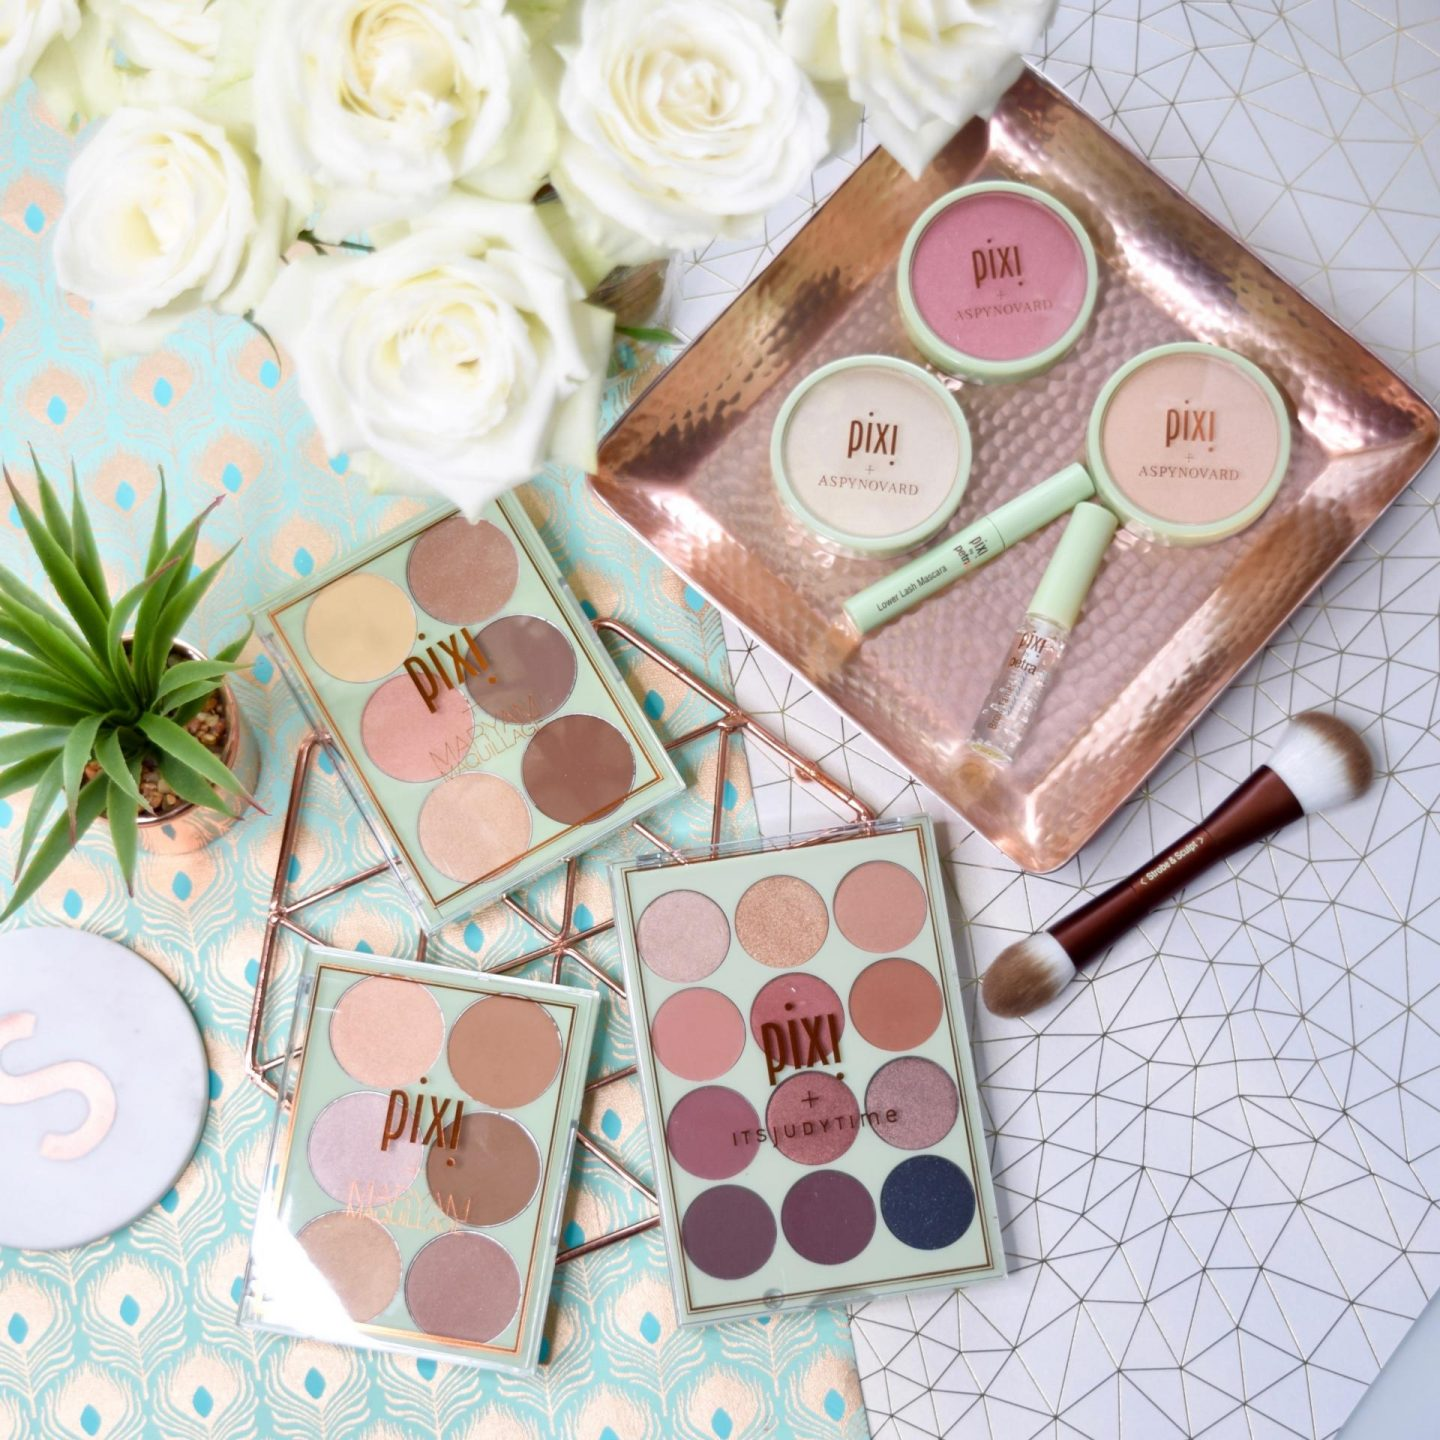 Pixi + Aspyn Ovard Collaboration | Glow-y Powder & Eye Accents: Review and Swatches